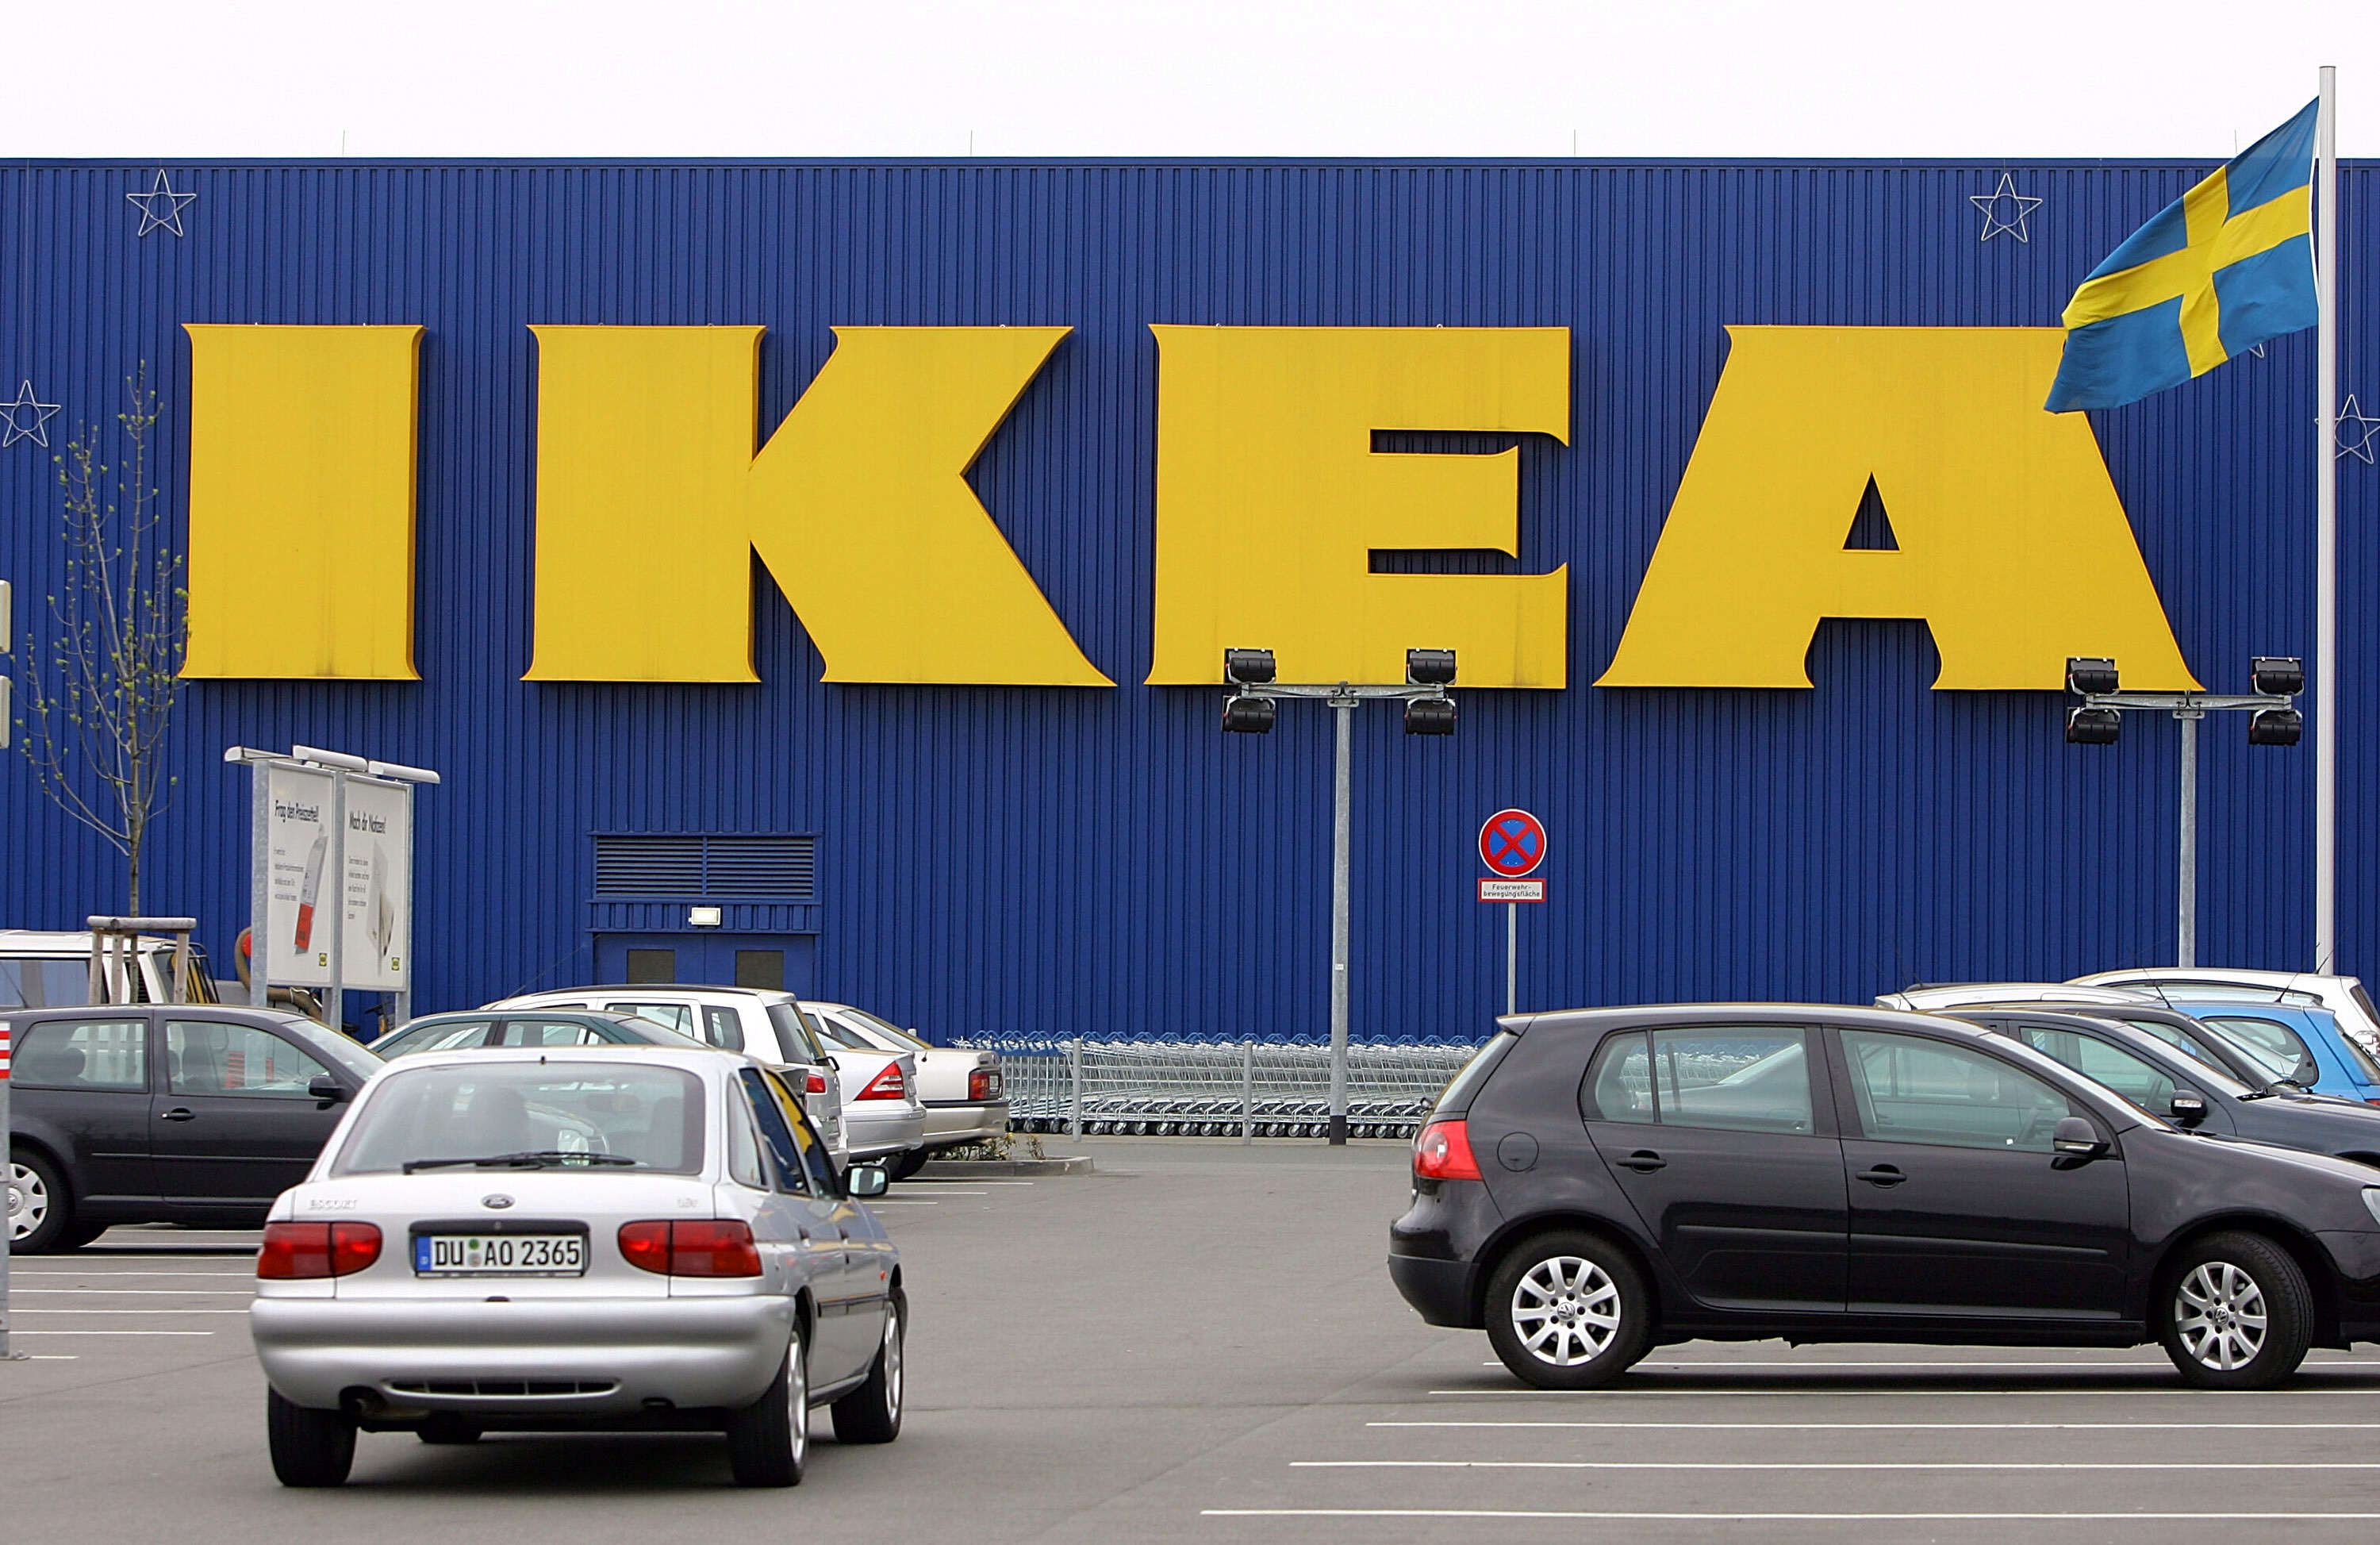 PA 15143016 Naked Girl Spotted In IKEA But Was It A Publicity Stunt